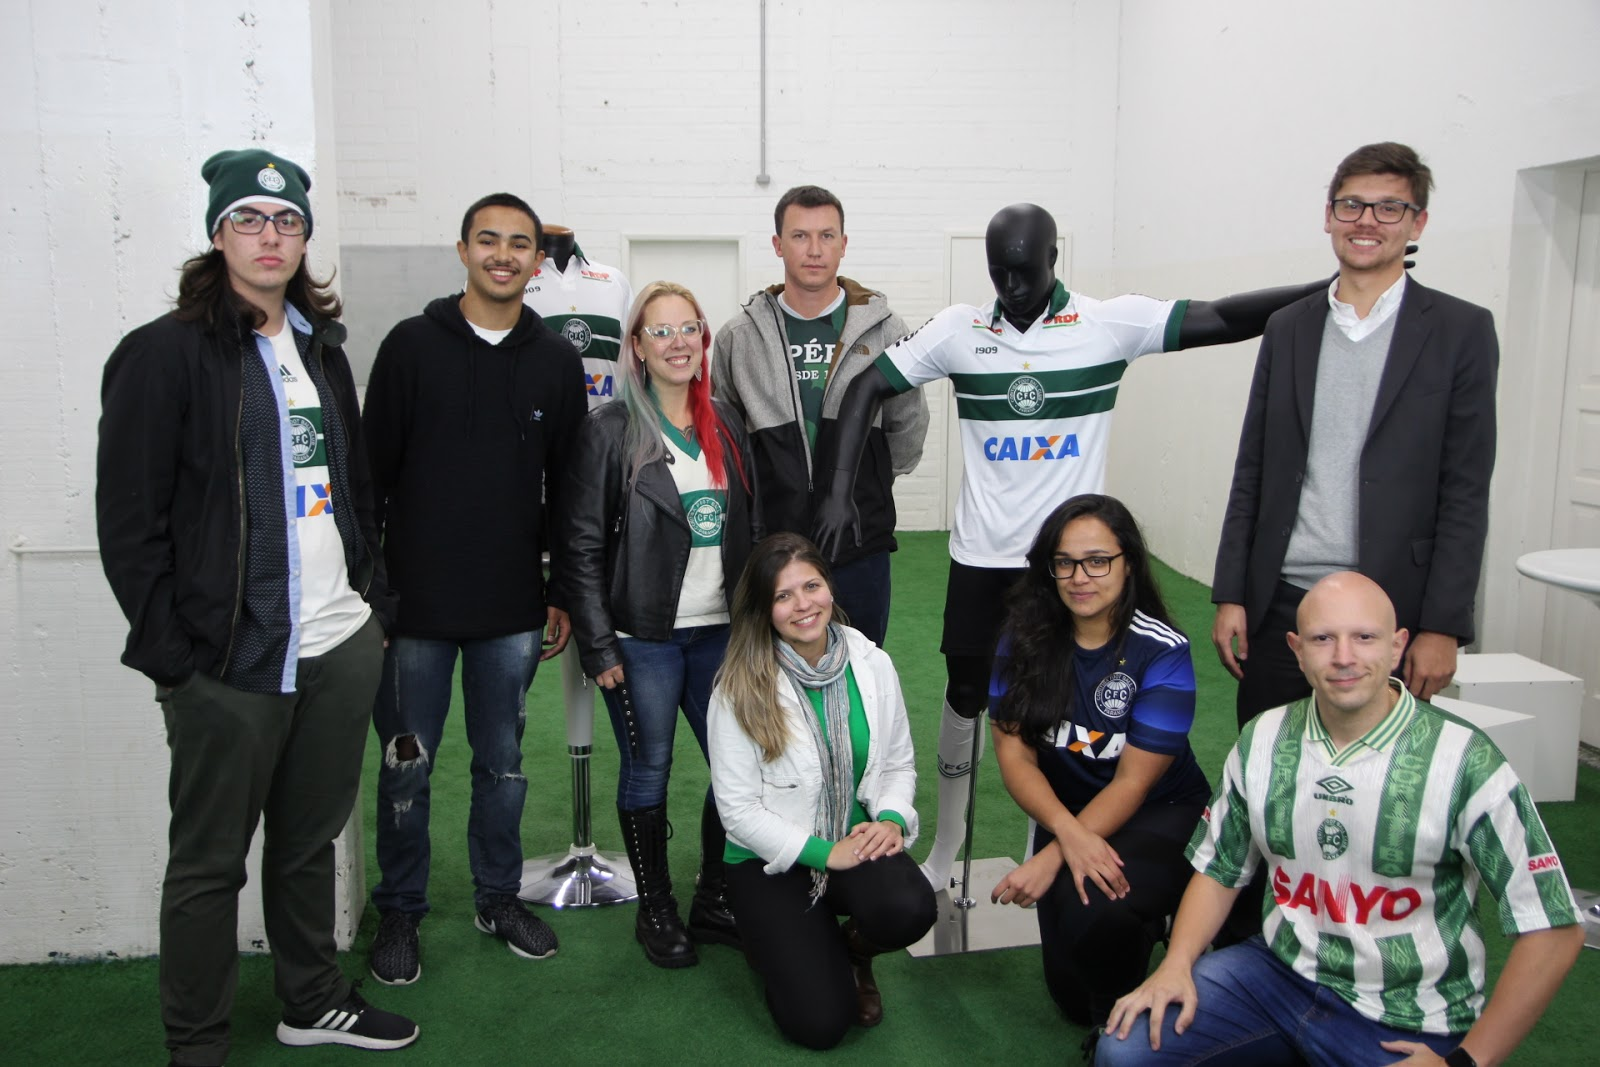 No more adidas in house coritiba 18 19 home away keeper kits todays action in which a group of members withdrew via the colegio branca goleada program the chance to meet the line first with fans drawn through the m4hsunfo